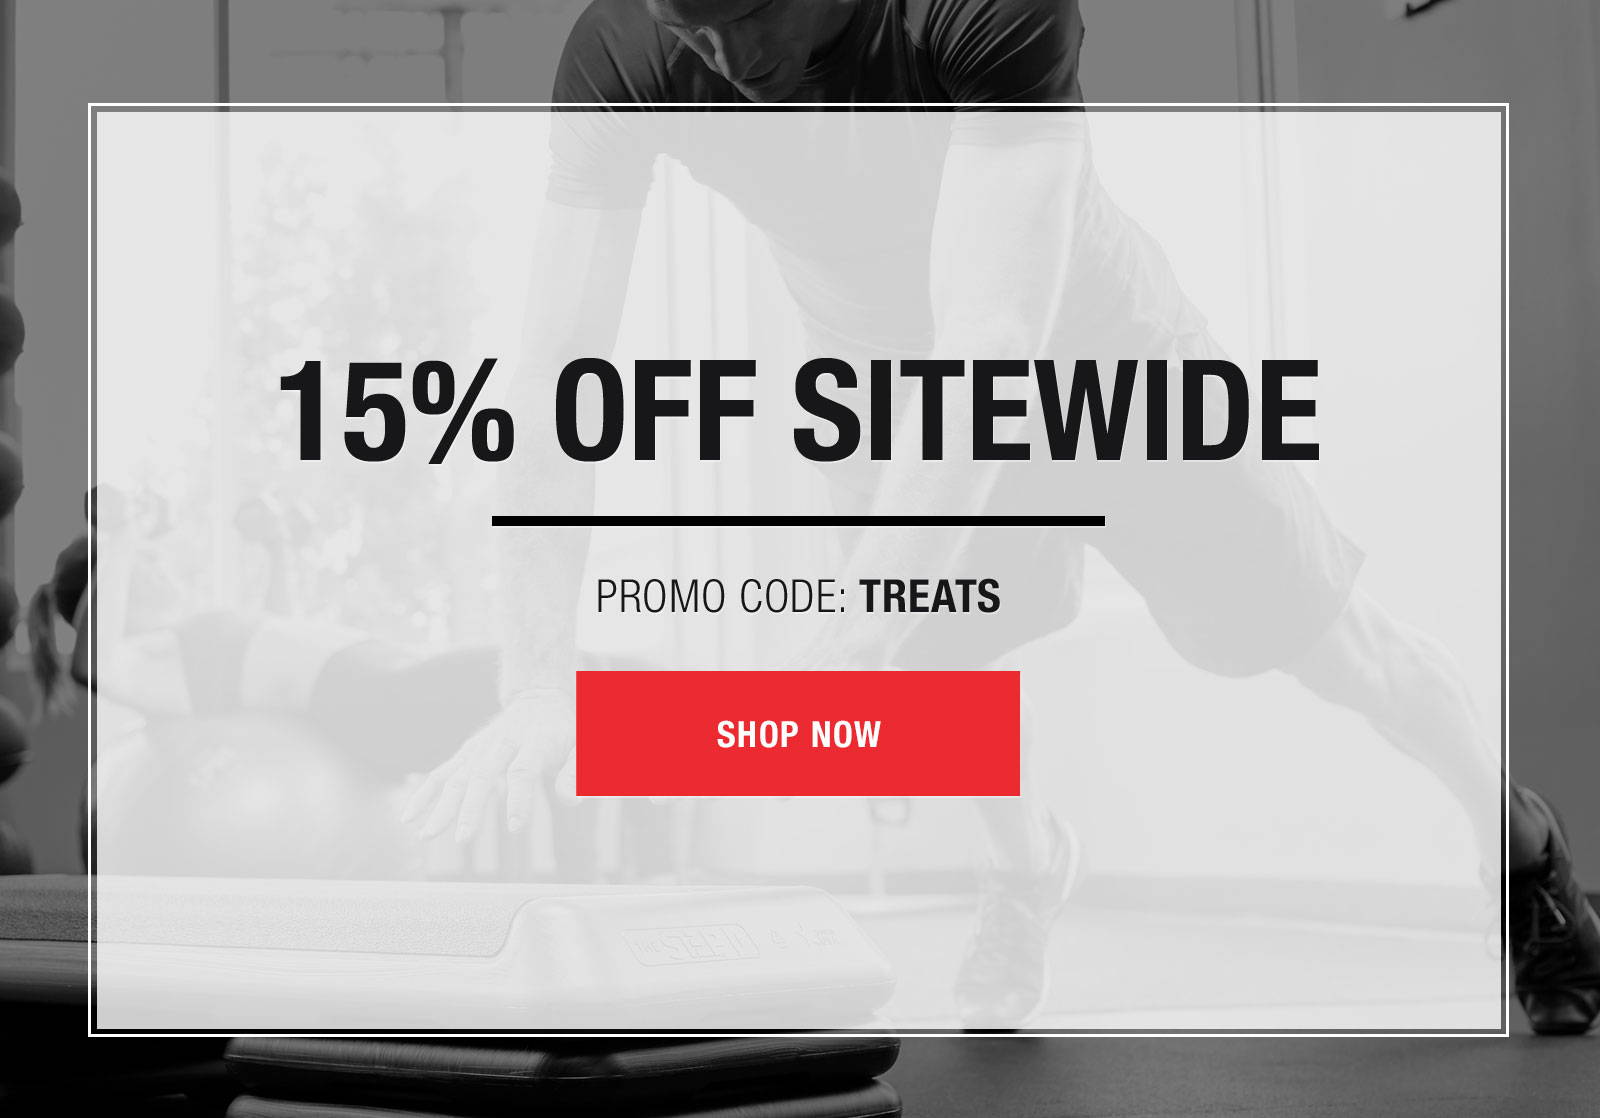 15% off sitewide with code TREATS